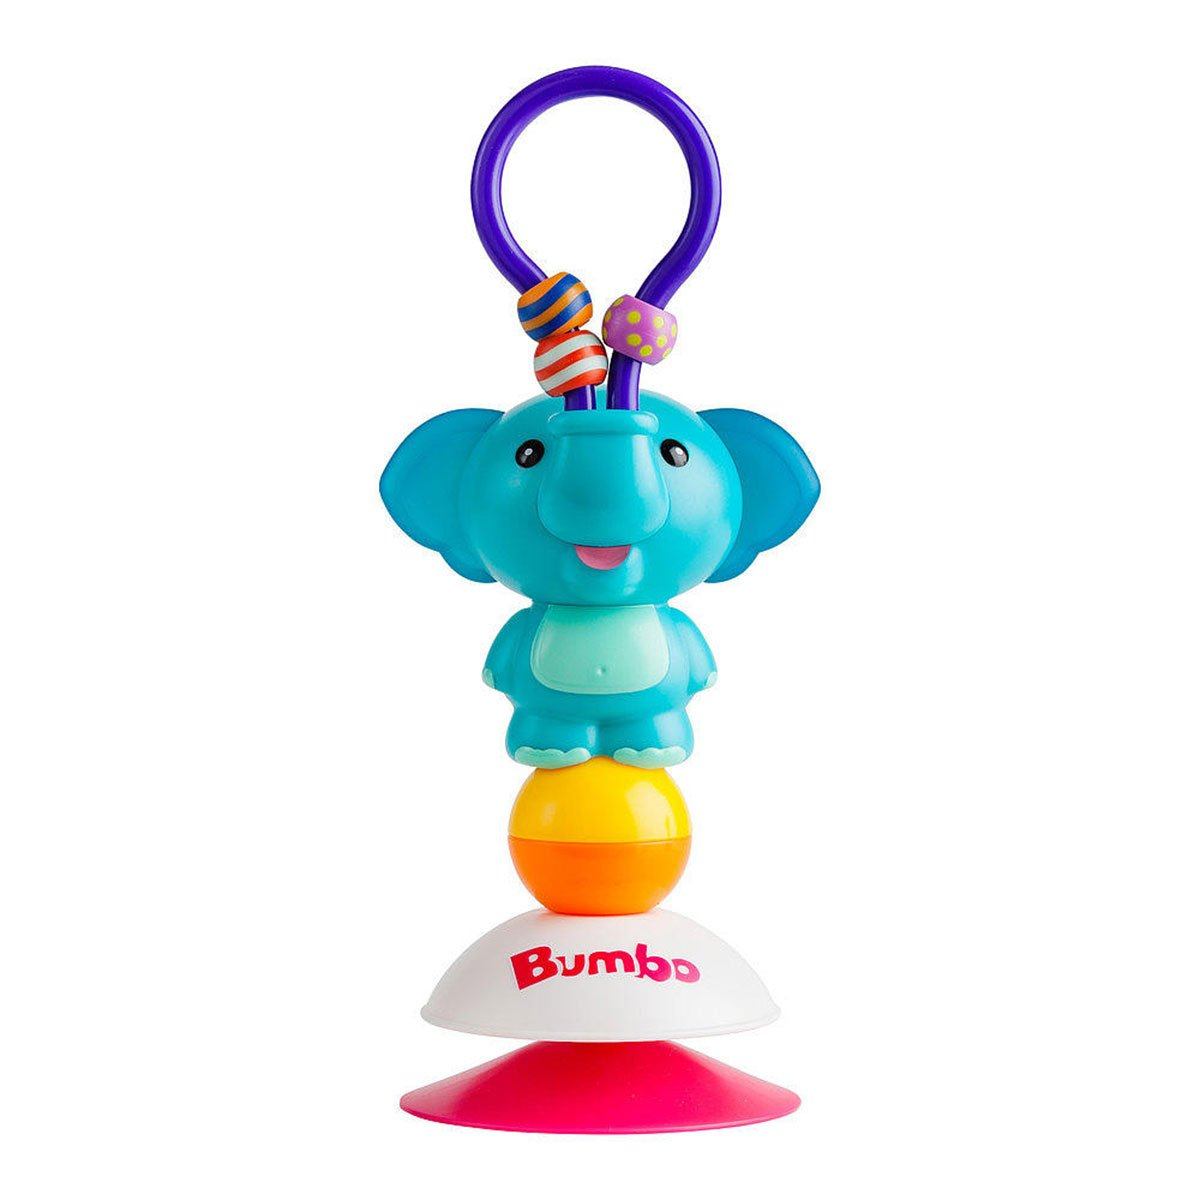 Bumbo Suction Toy, Enzo The Elephant B-Enzo 0013